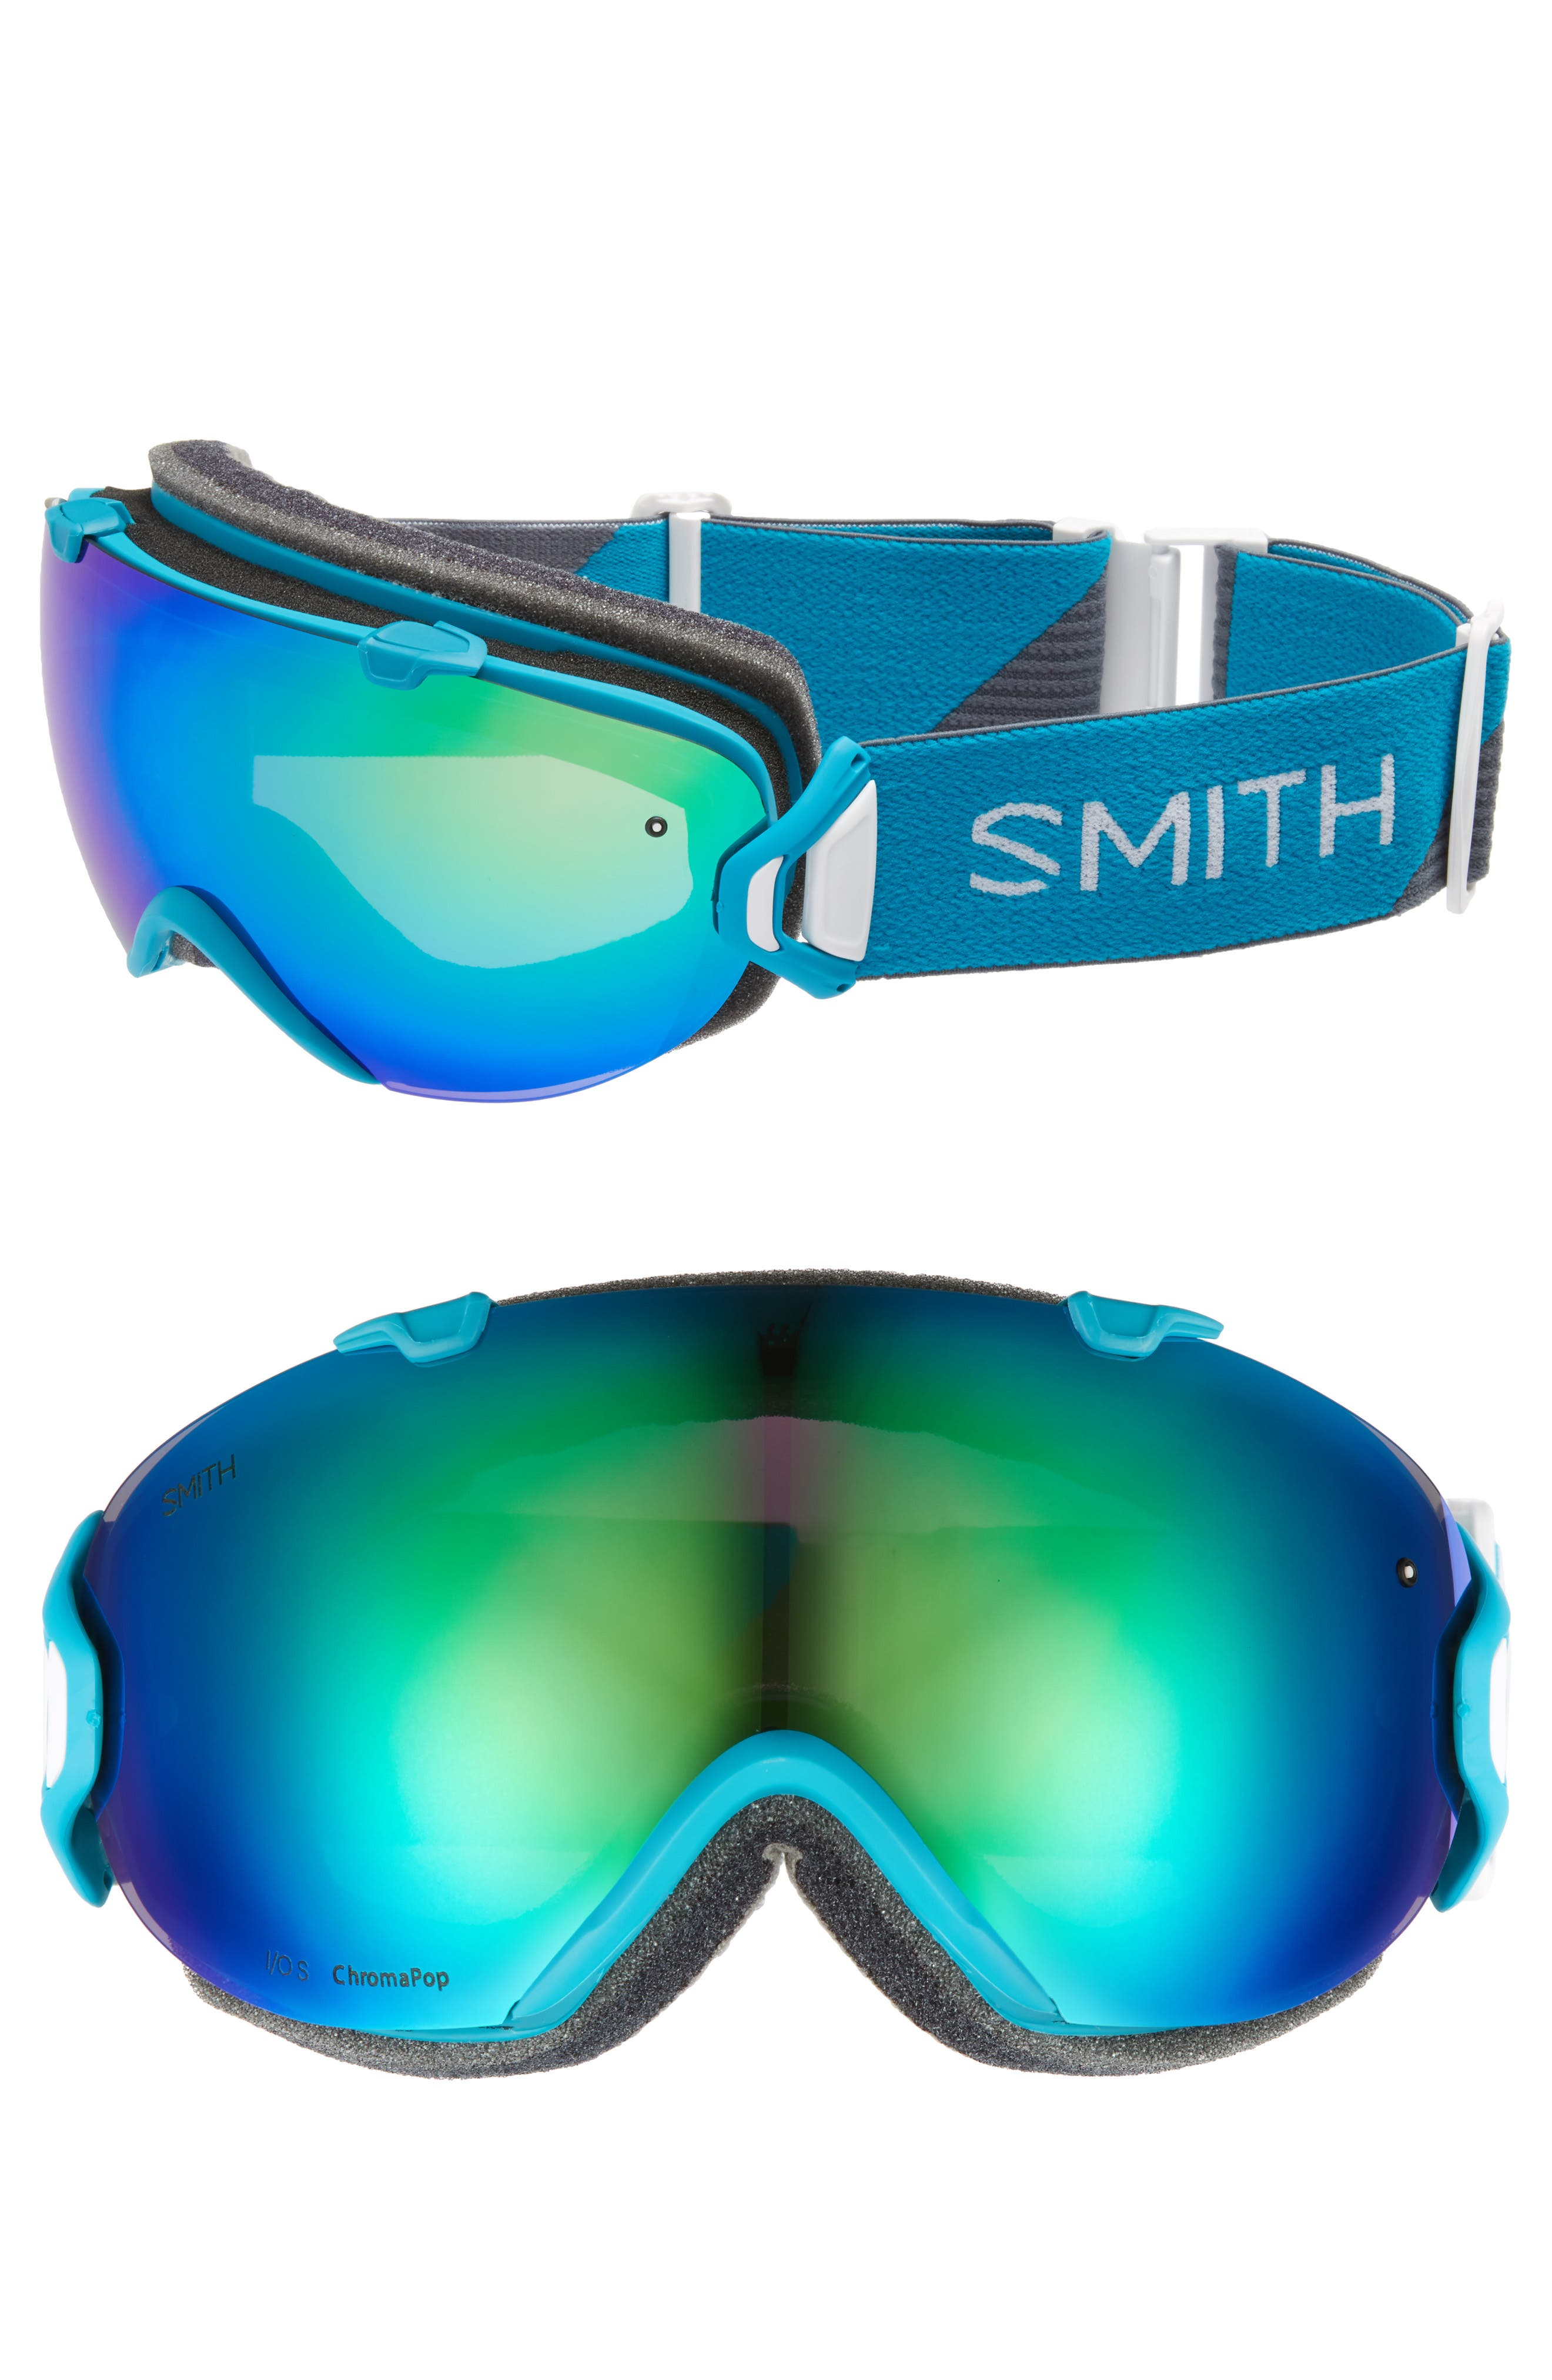 I/OS ChromaPop Snow Goggles,                         Main,                         color, Mineral Split/ Mirror